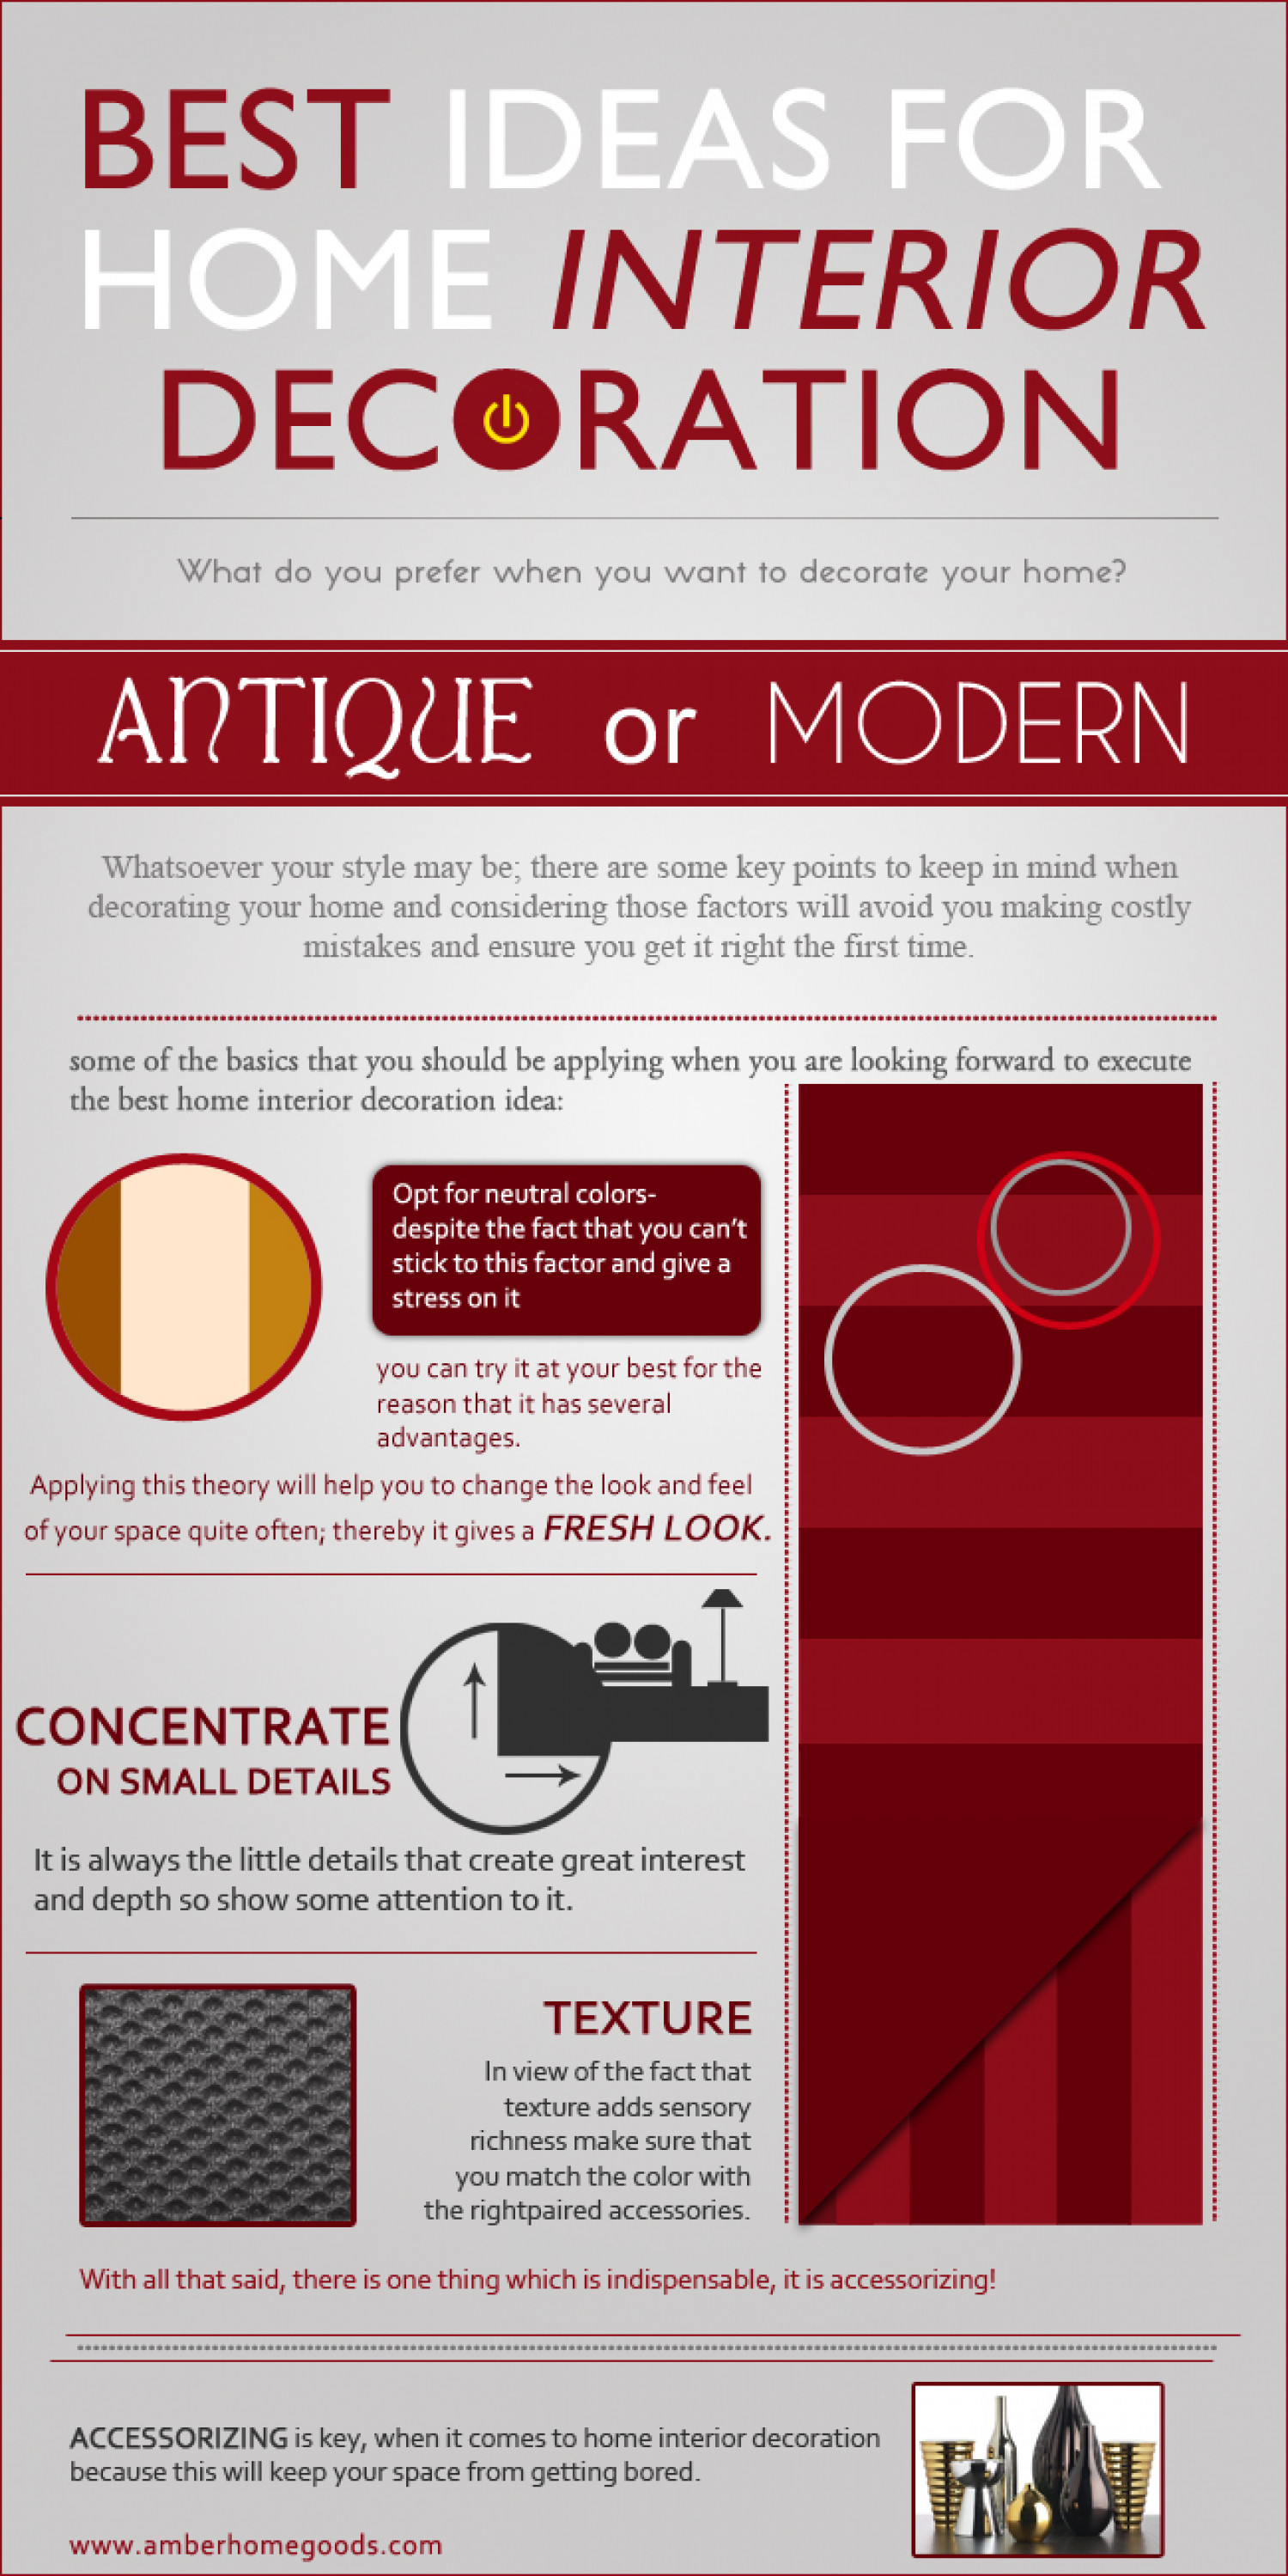 Best ideas for home interior decoration Infographic